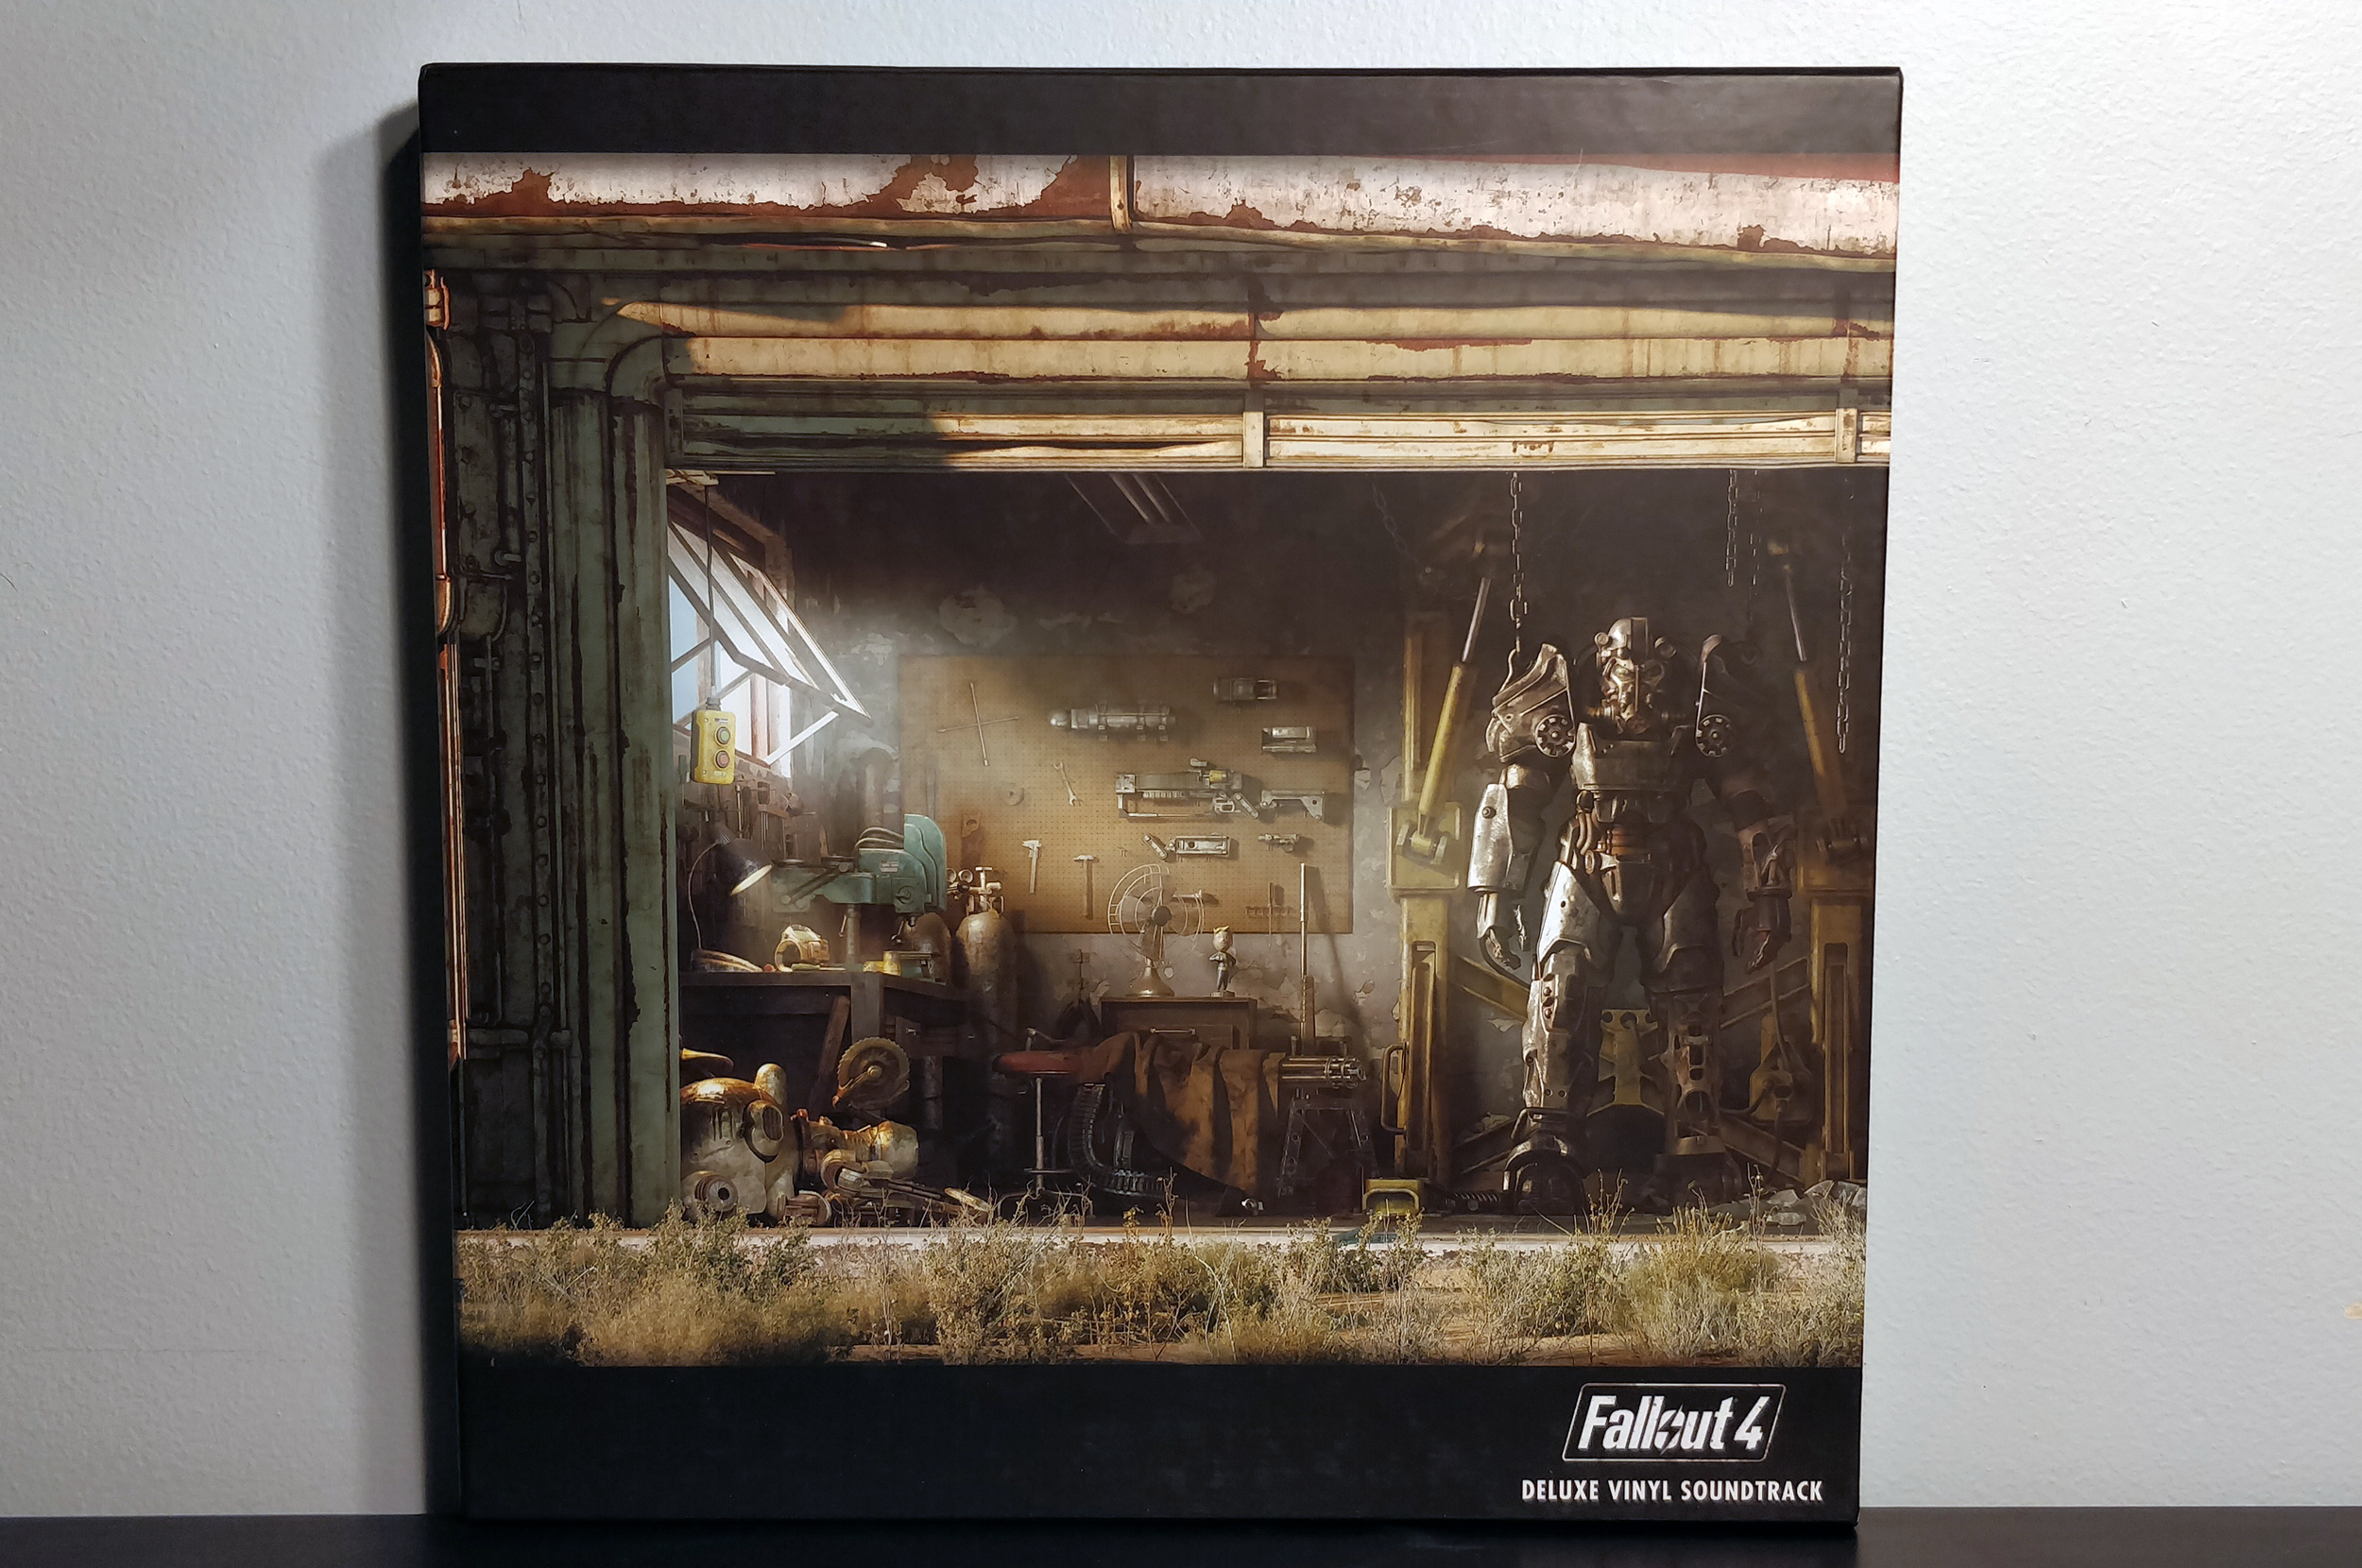 """Fallout 4 by Inon Zur pressed on """"Vault Suit"""" blue vinyl by Spacelab9"""